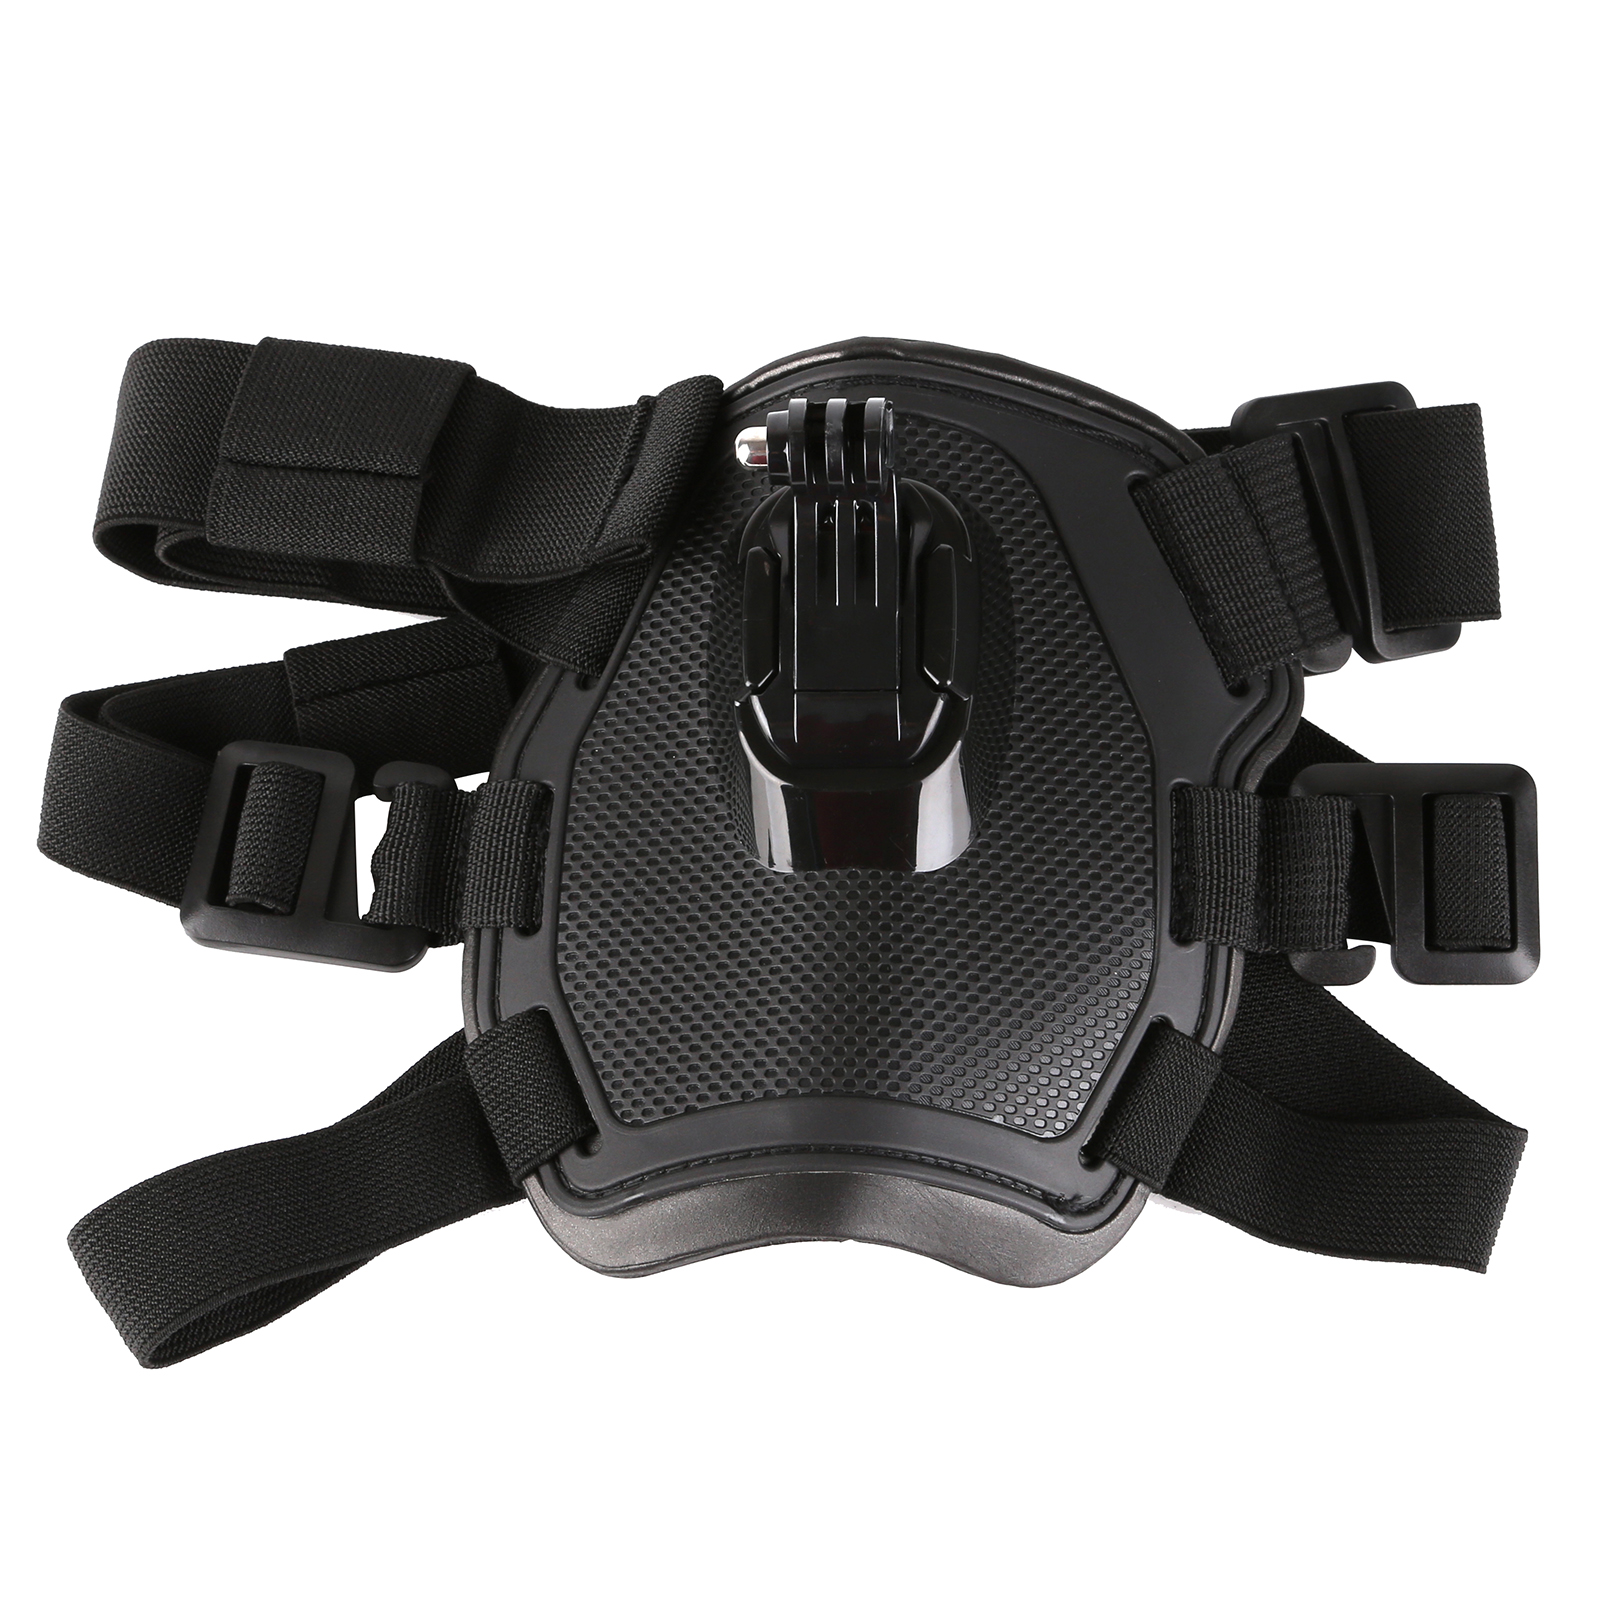 Chest Strap Belt Mount For Gopro Accessories